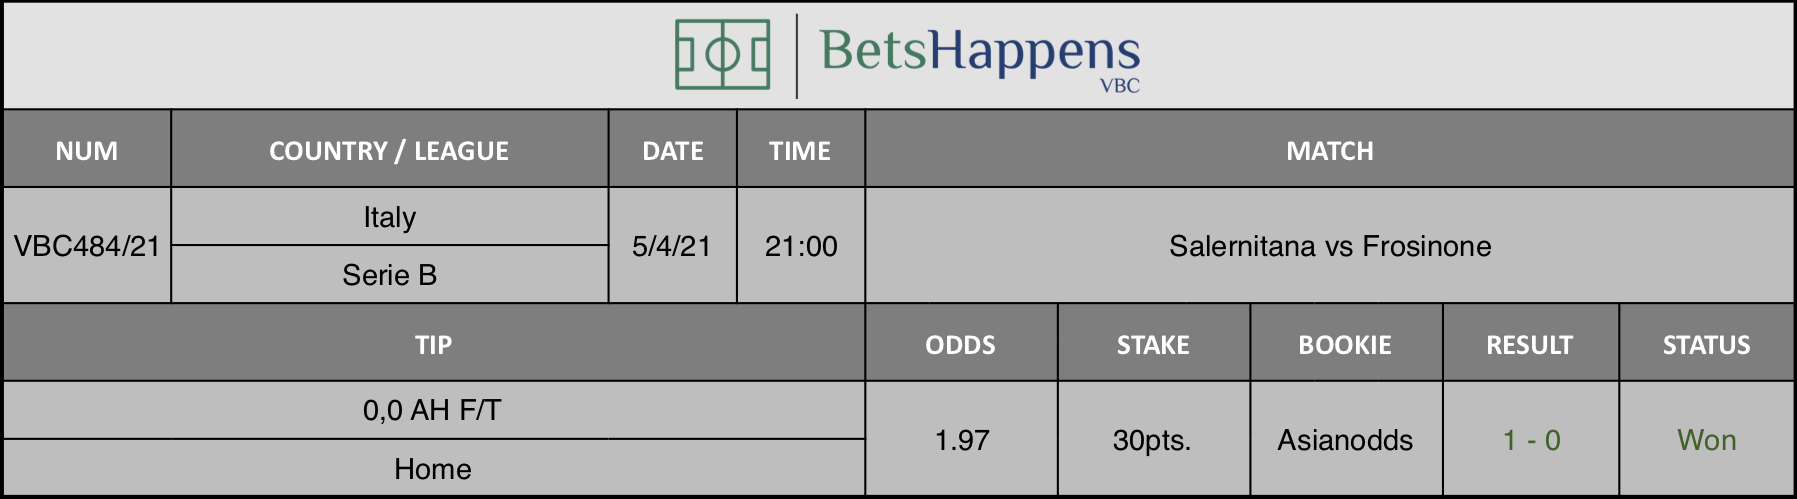 Results of our tip for the Salernitana vs Frosinone match where 0,0 AH F/T  Home is recommended.